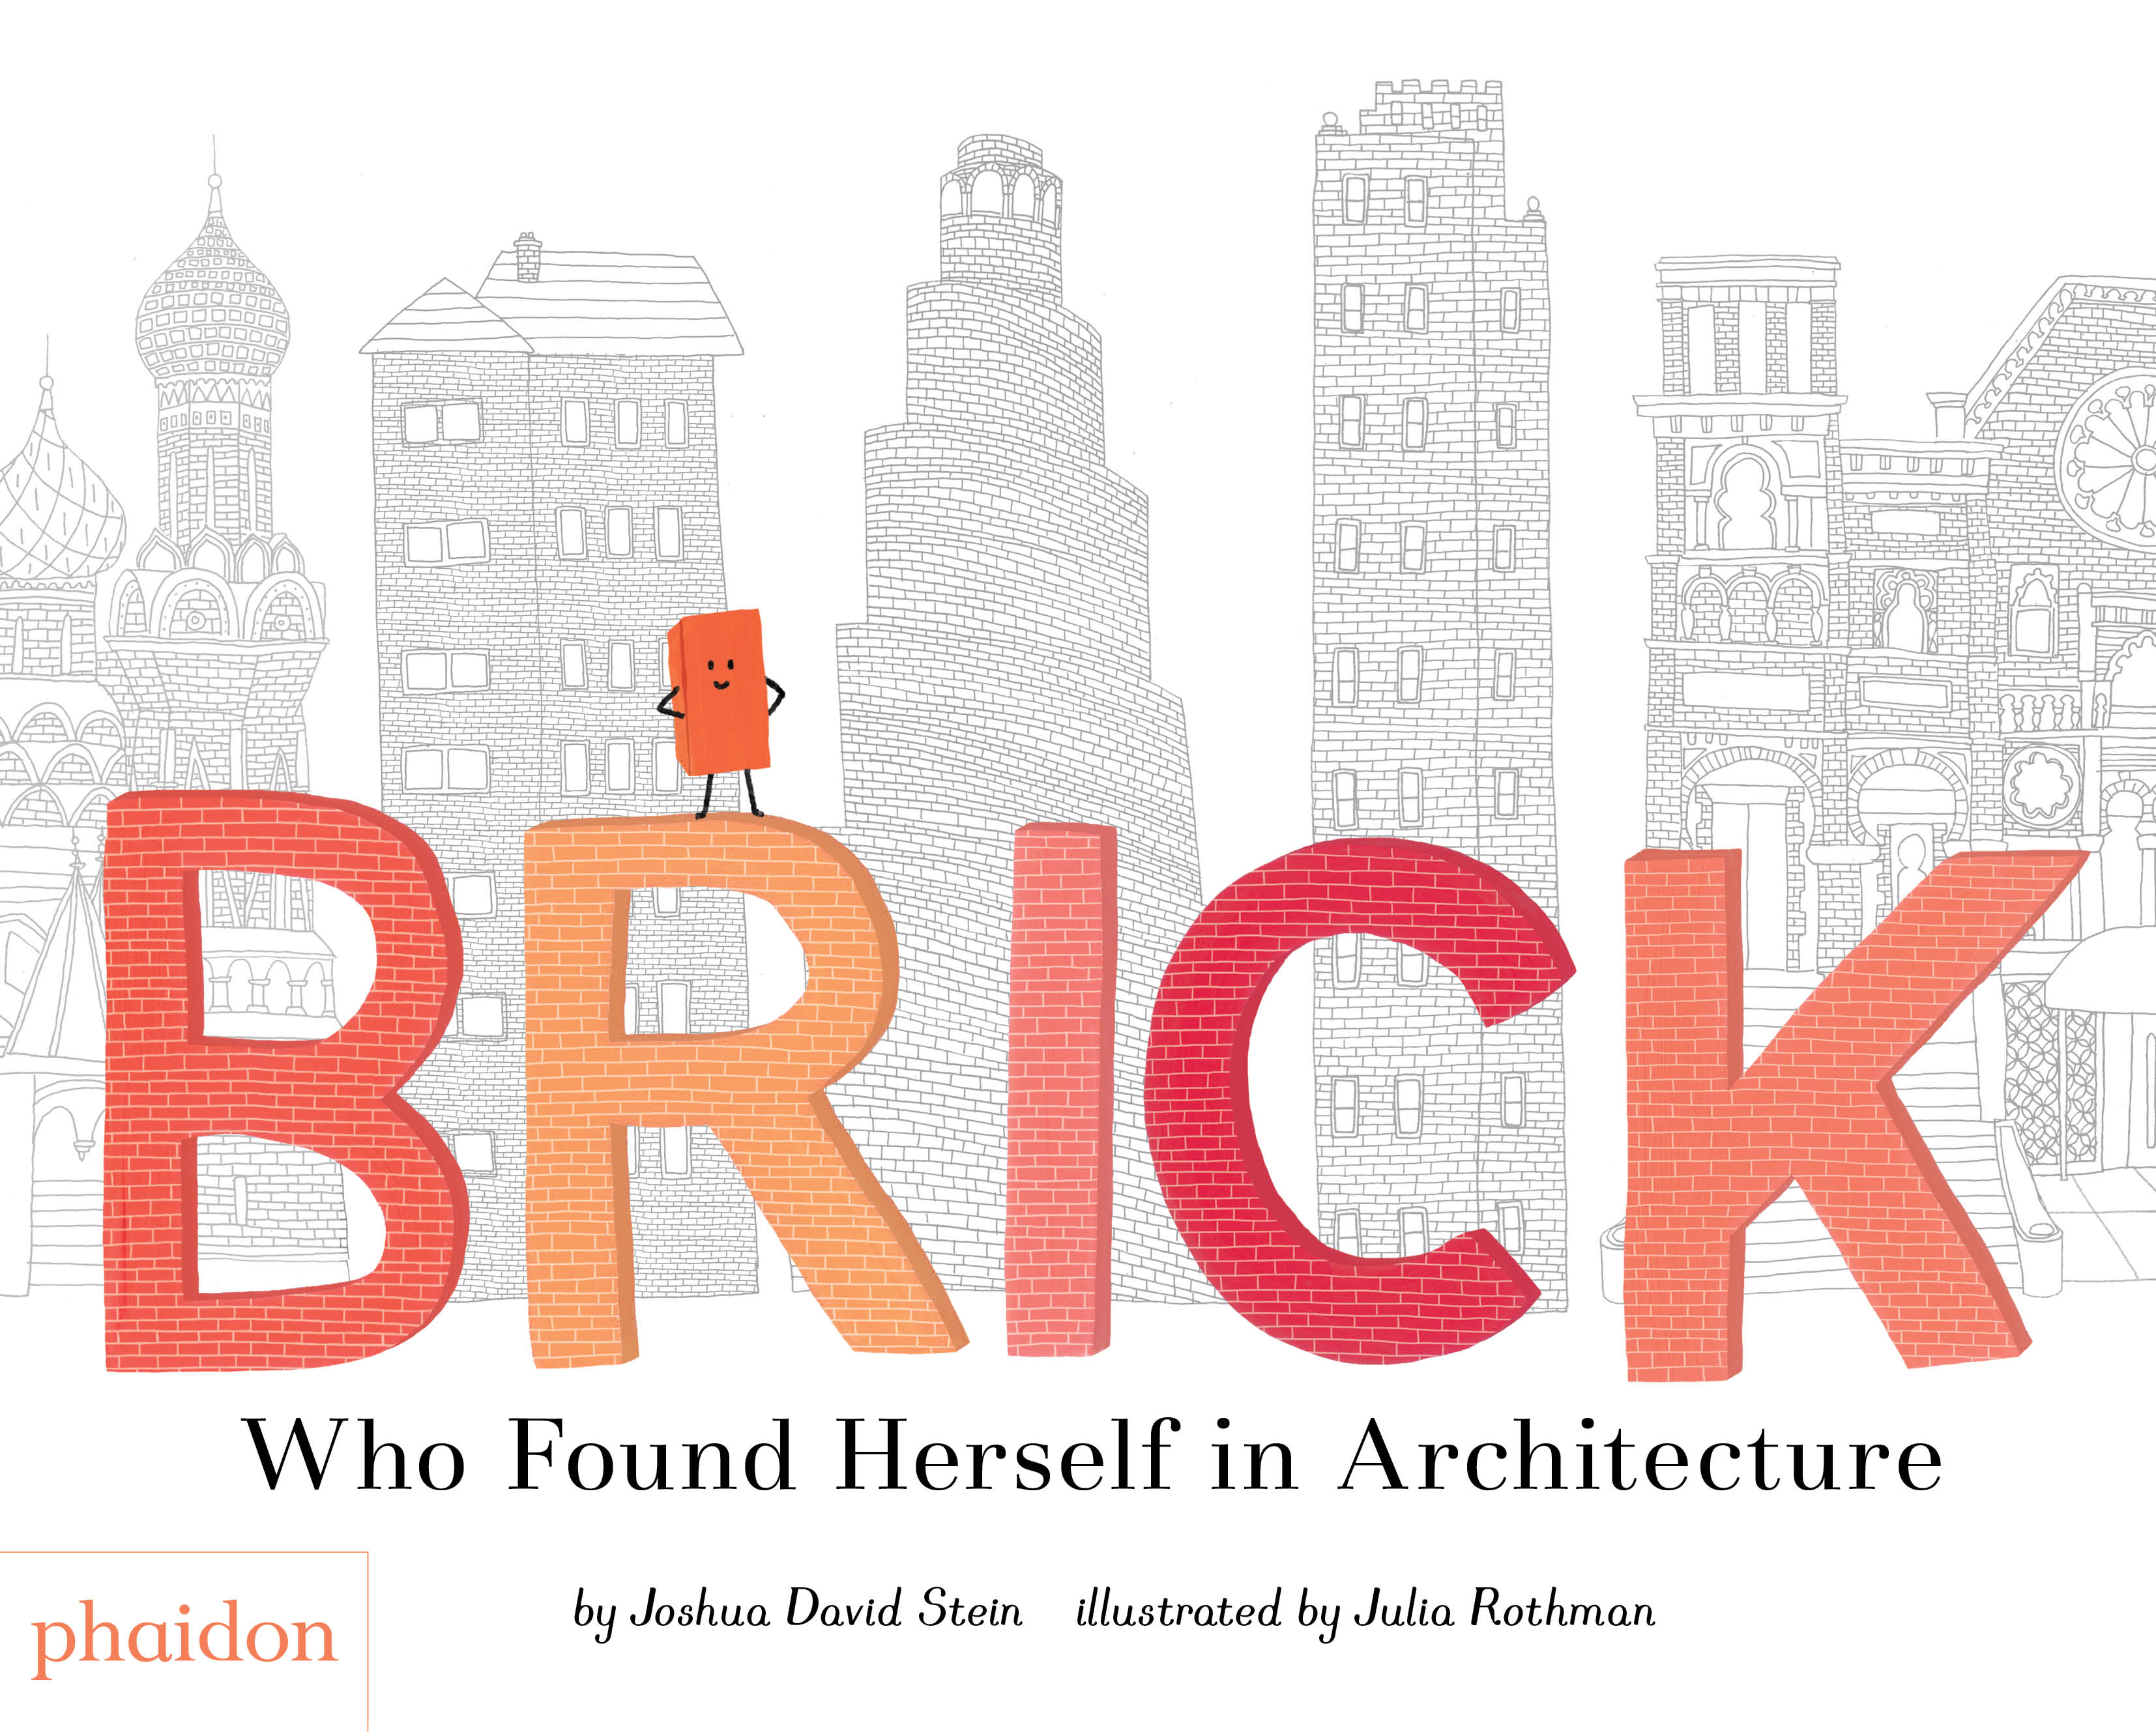 Sunday Story Time with Julia Rothman (Illustrator of Brick: Who Found Herself in Architecture)